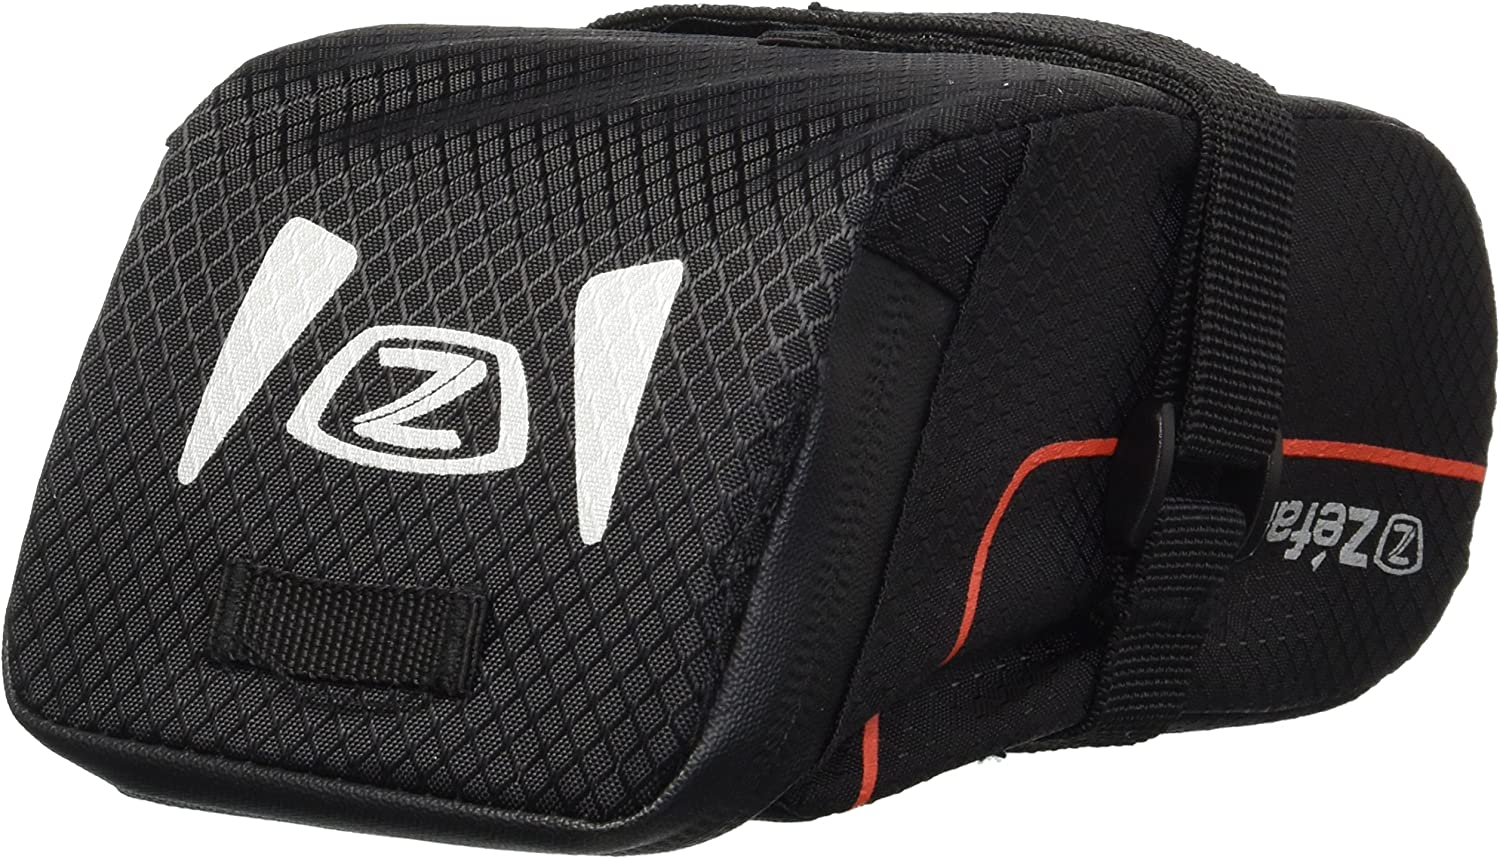 Zefal Bag Seat Z Light Pack Small